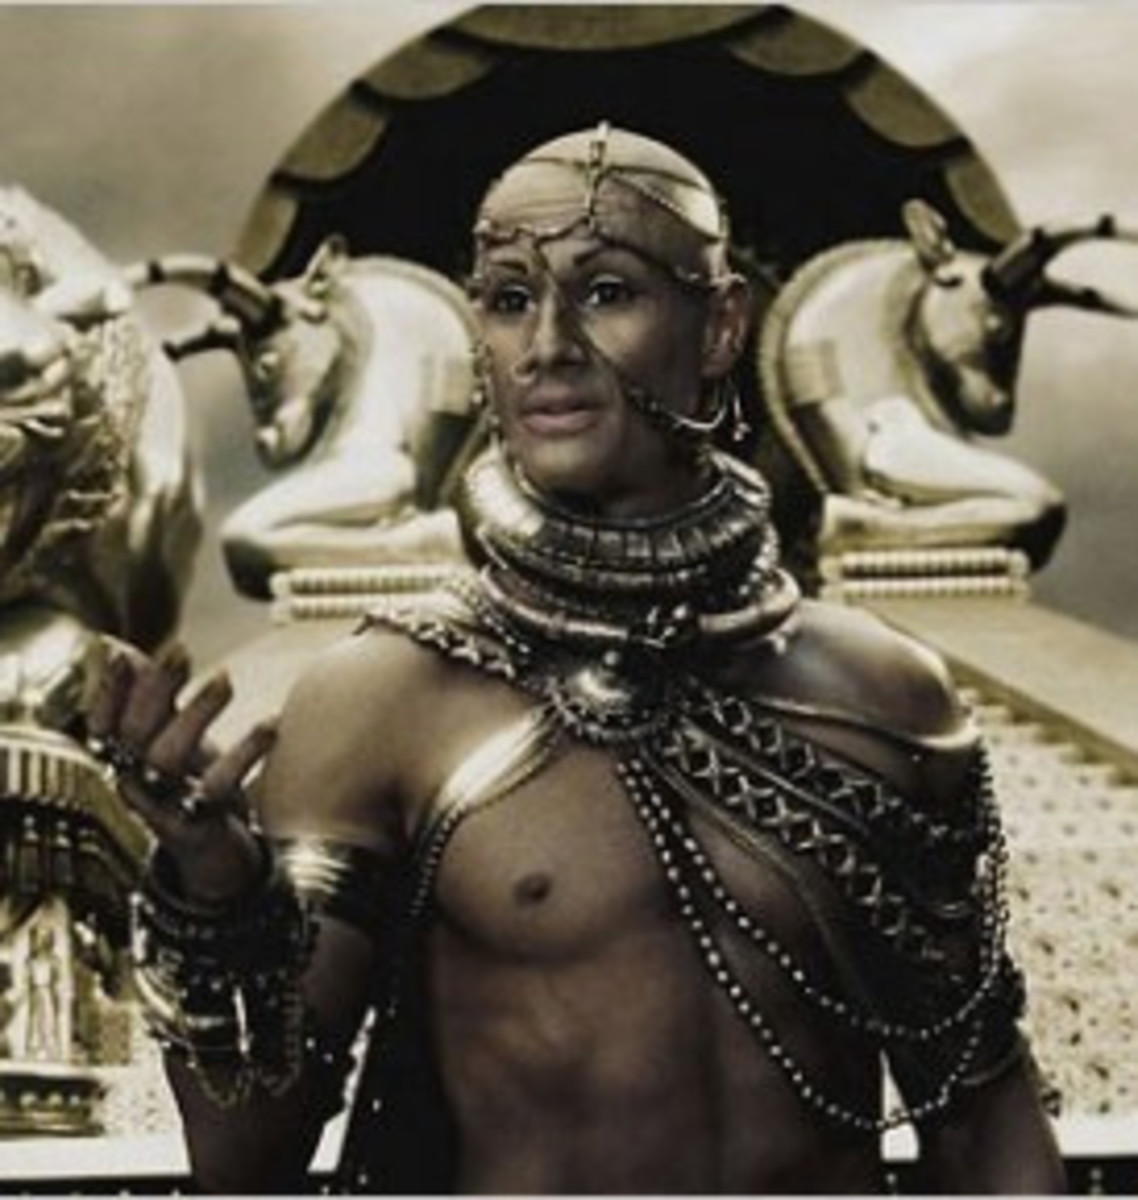 Is Xerxes worthy of the title 'Great'?